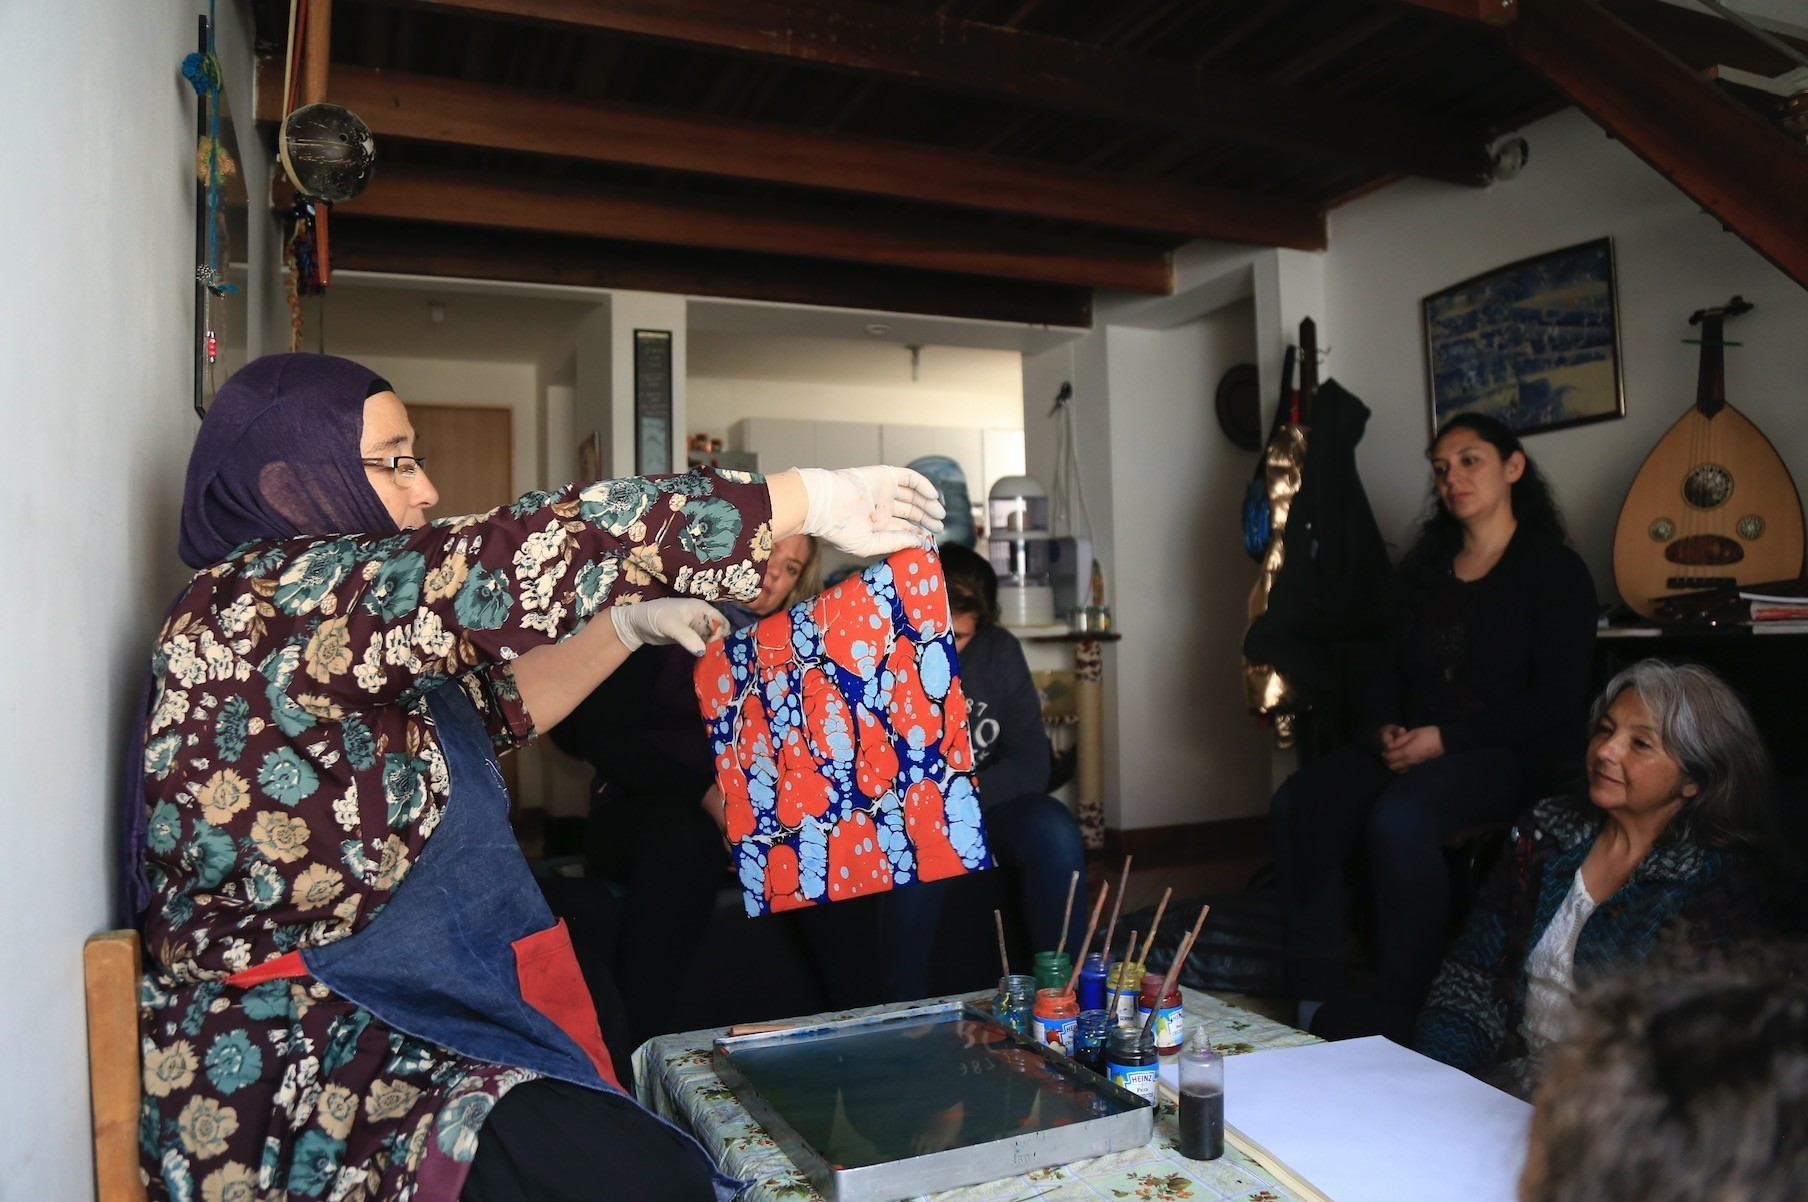 Quiolla works mostly with women in Latin American countries and organizes therapy sessions with Turkish music.